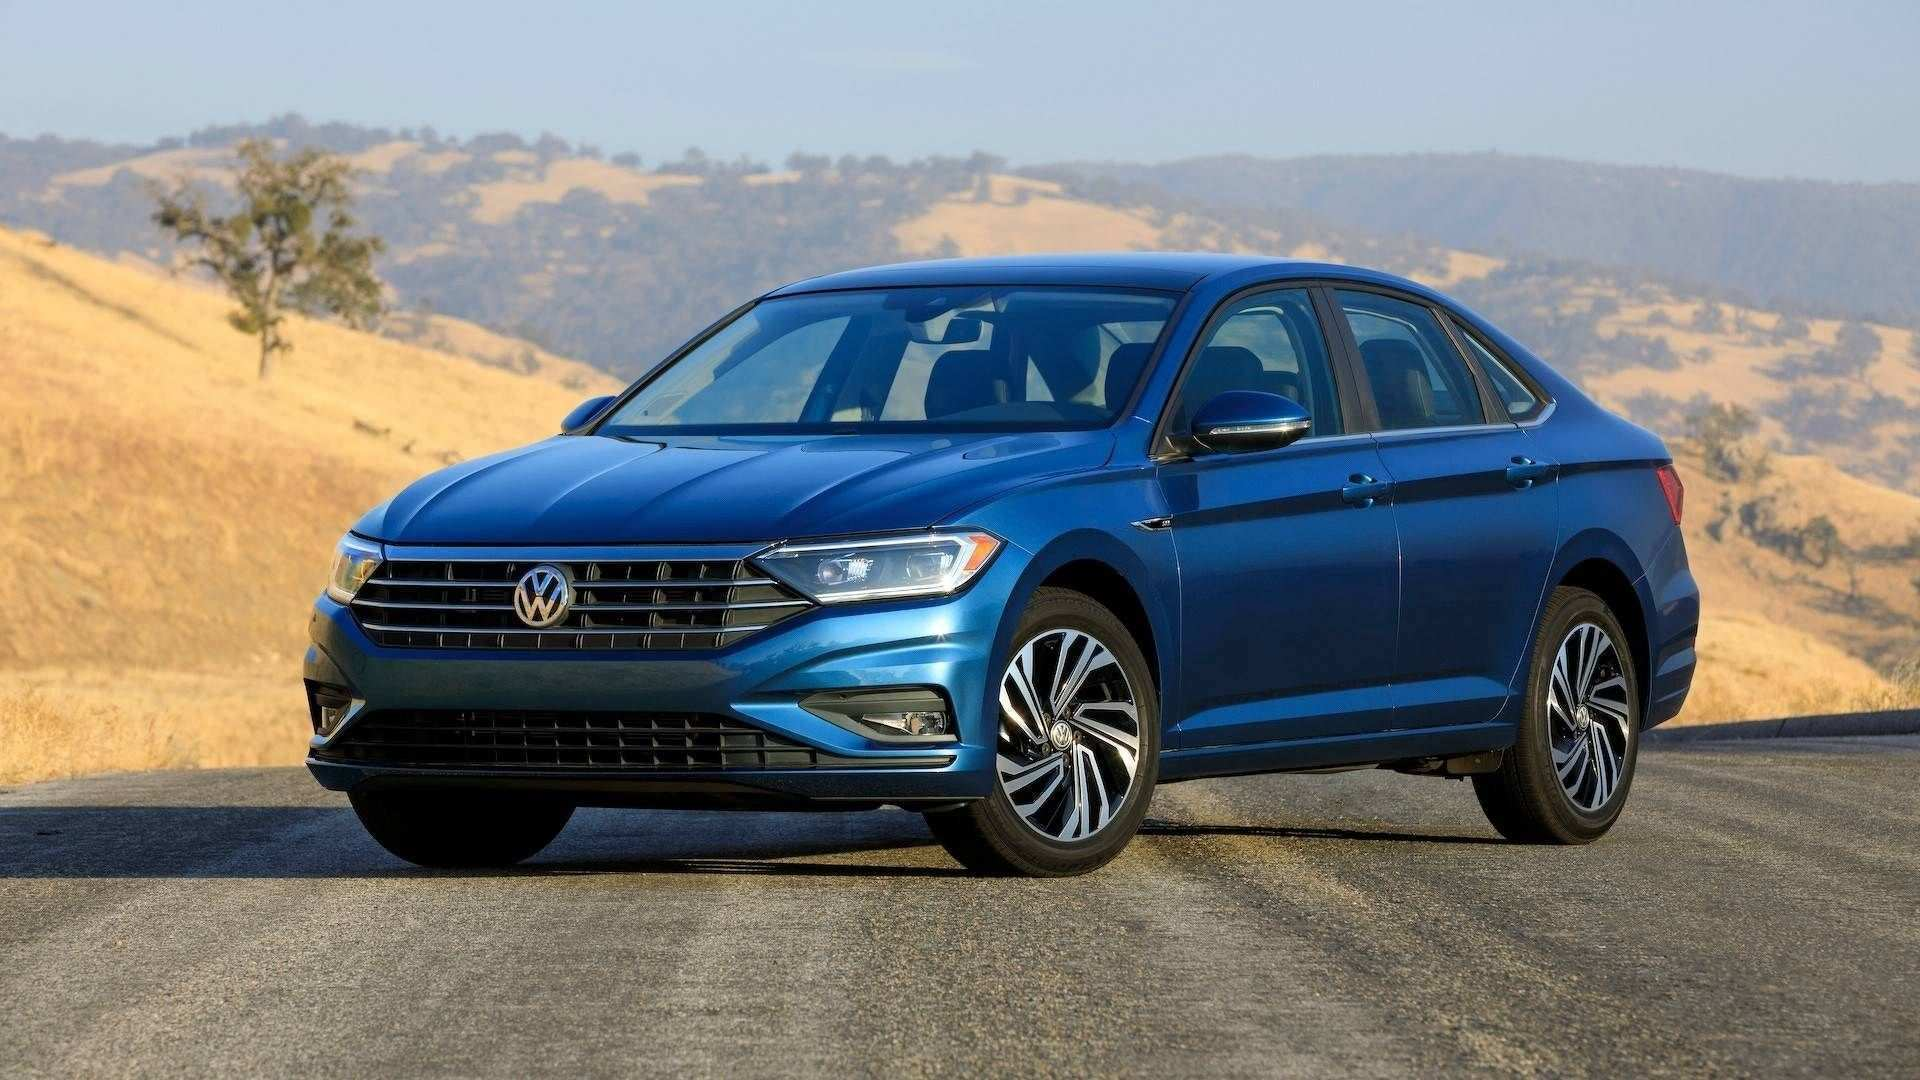 70 Best Review Volkswagen 2019 Colombia Price with Volkswagen 2019 Colombia